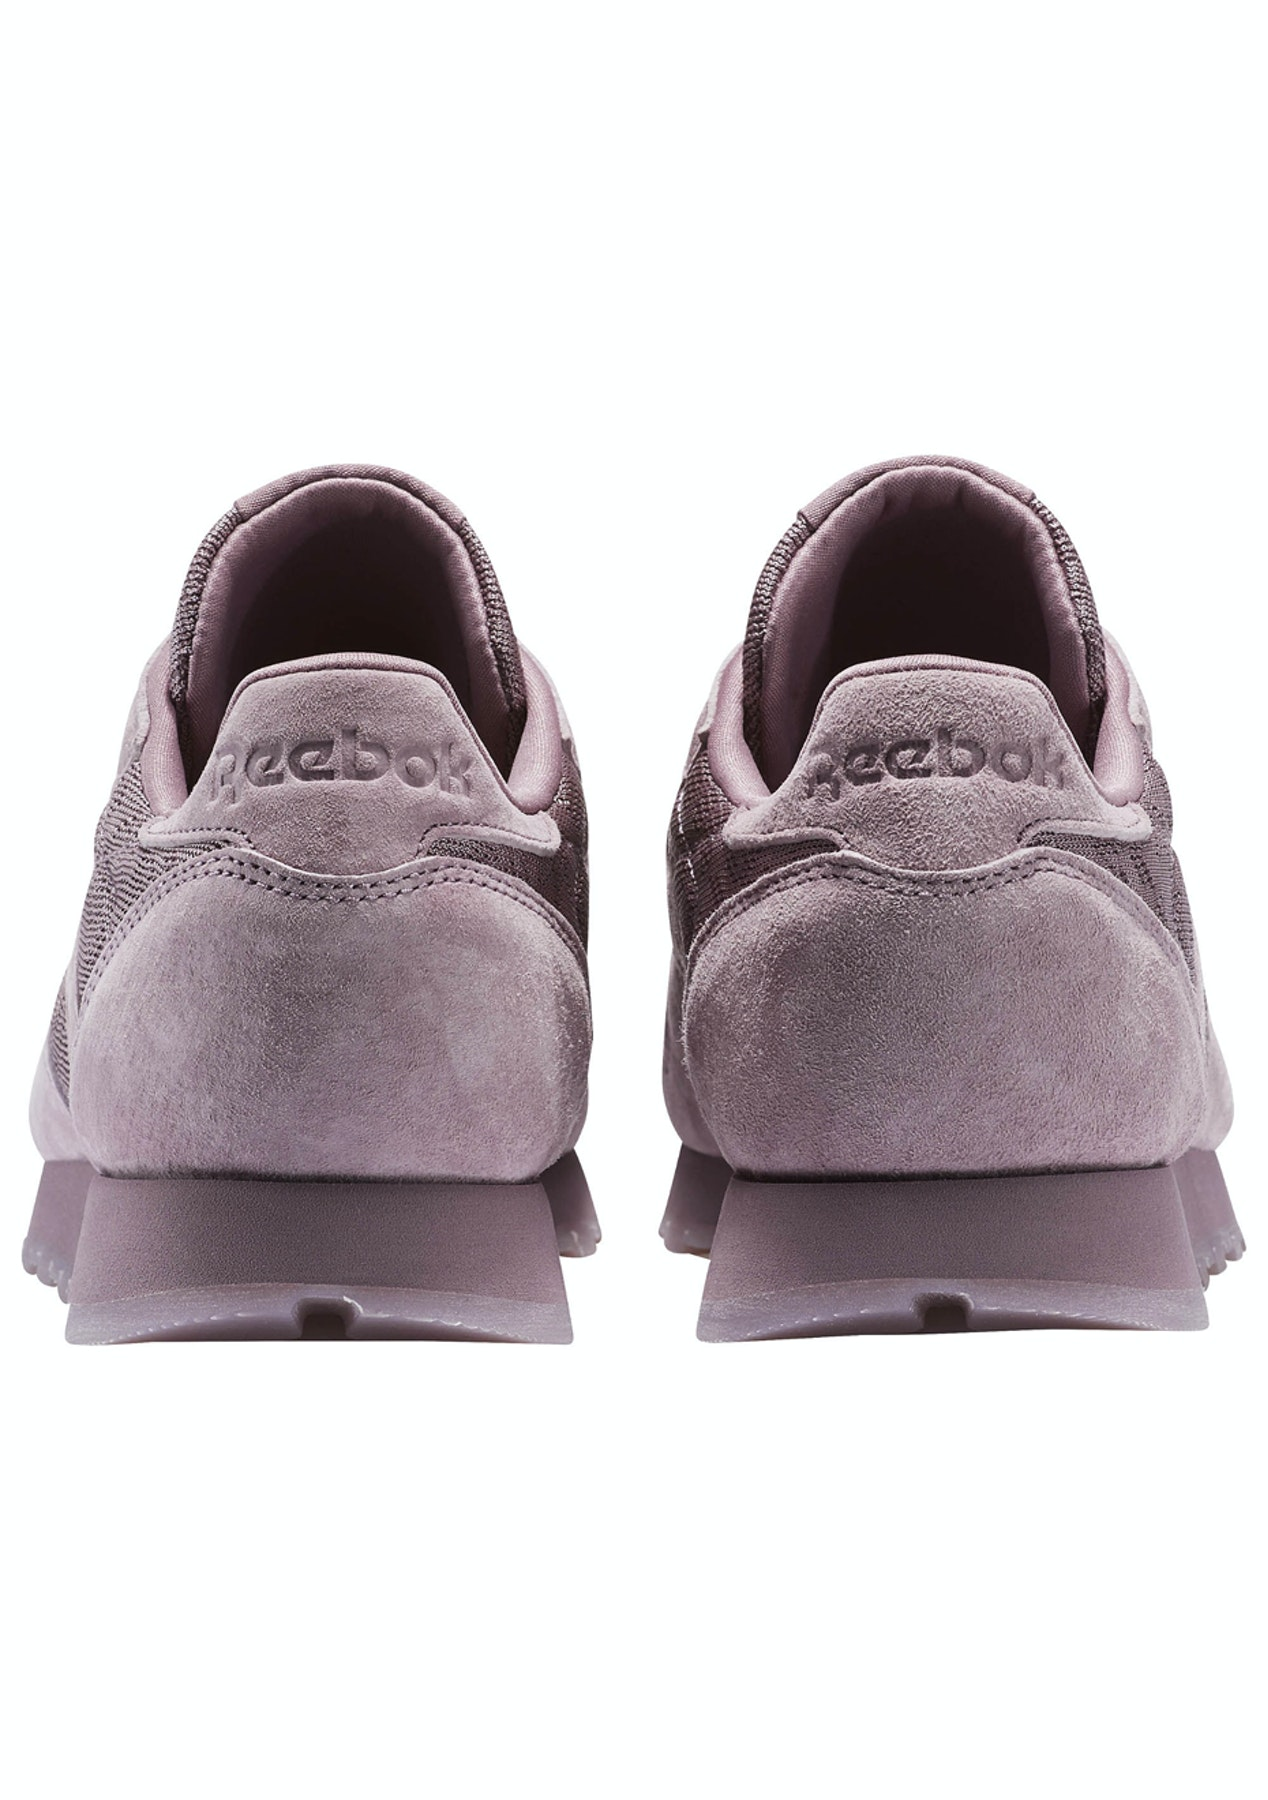 ee353e0654f7fa Reebok Womens - Classic Leather Lace Smoky Orchid White - 50% Off Reebok -  Onceit